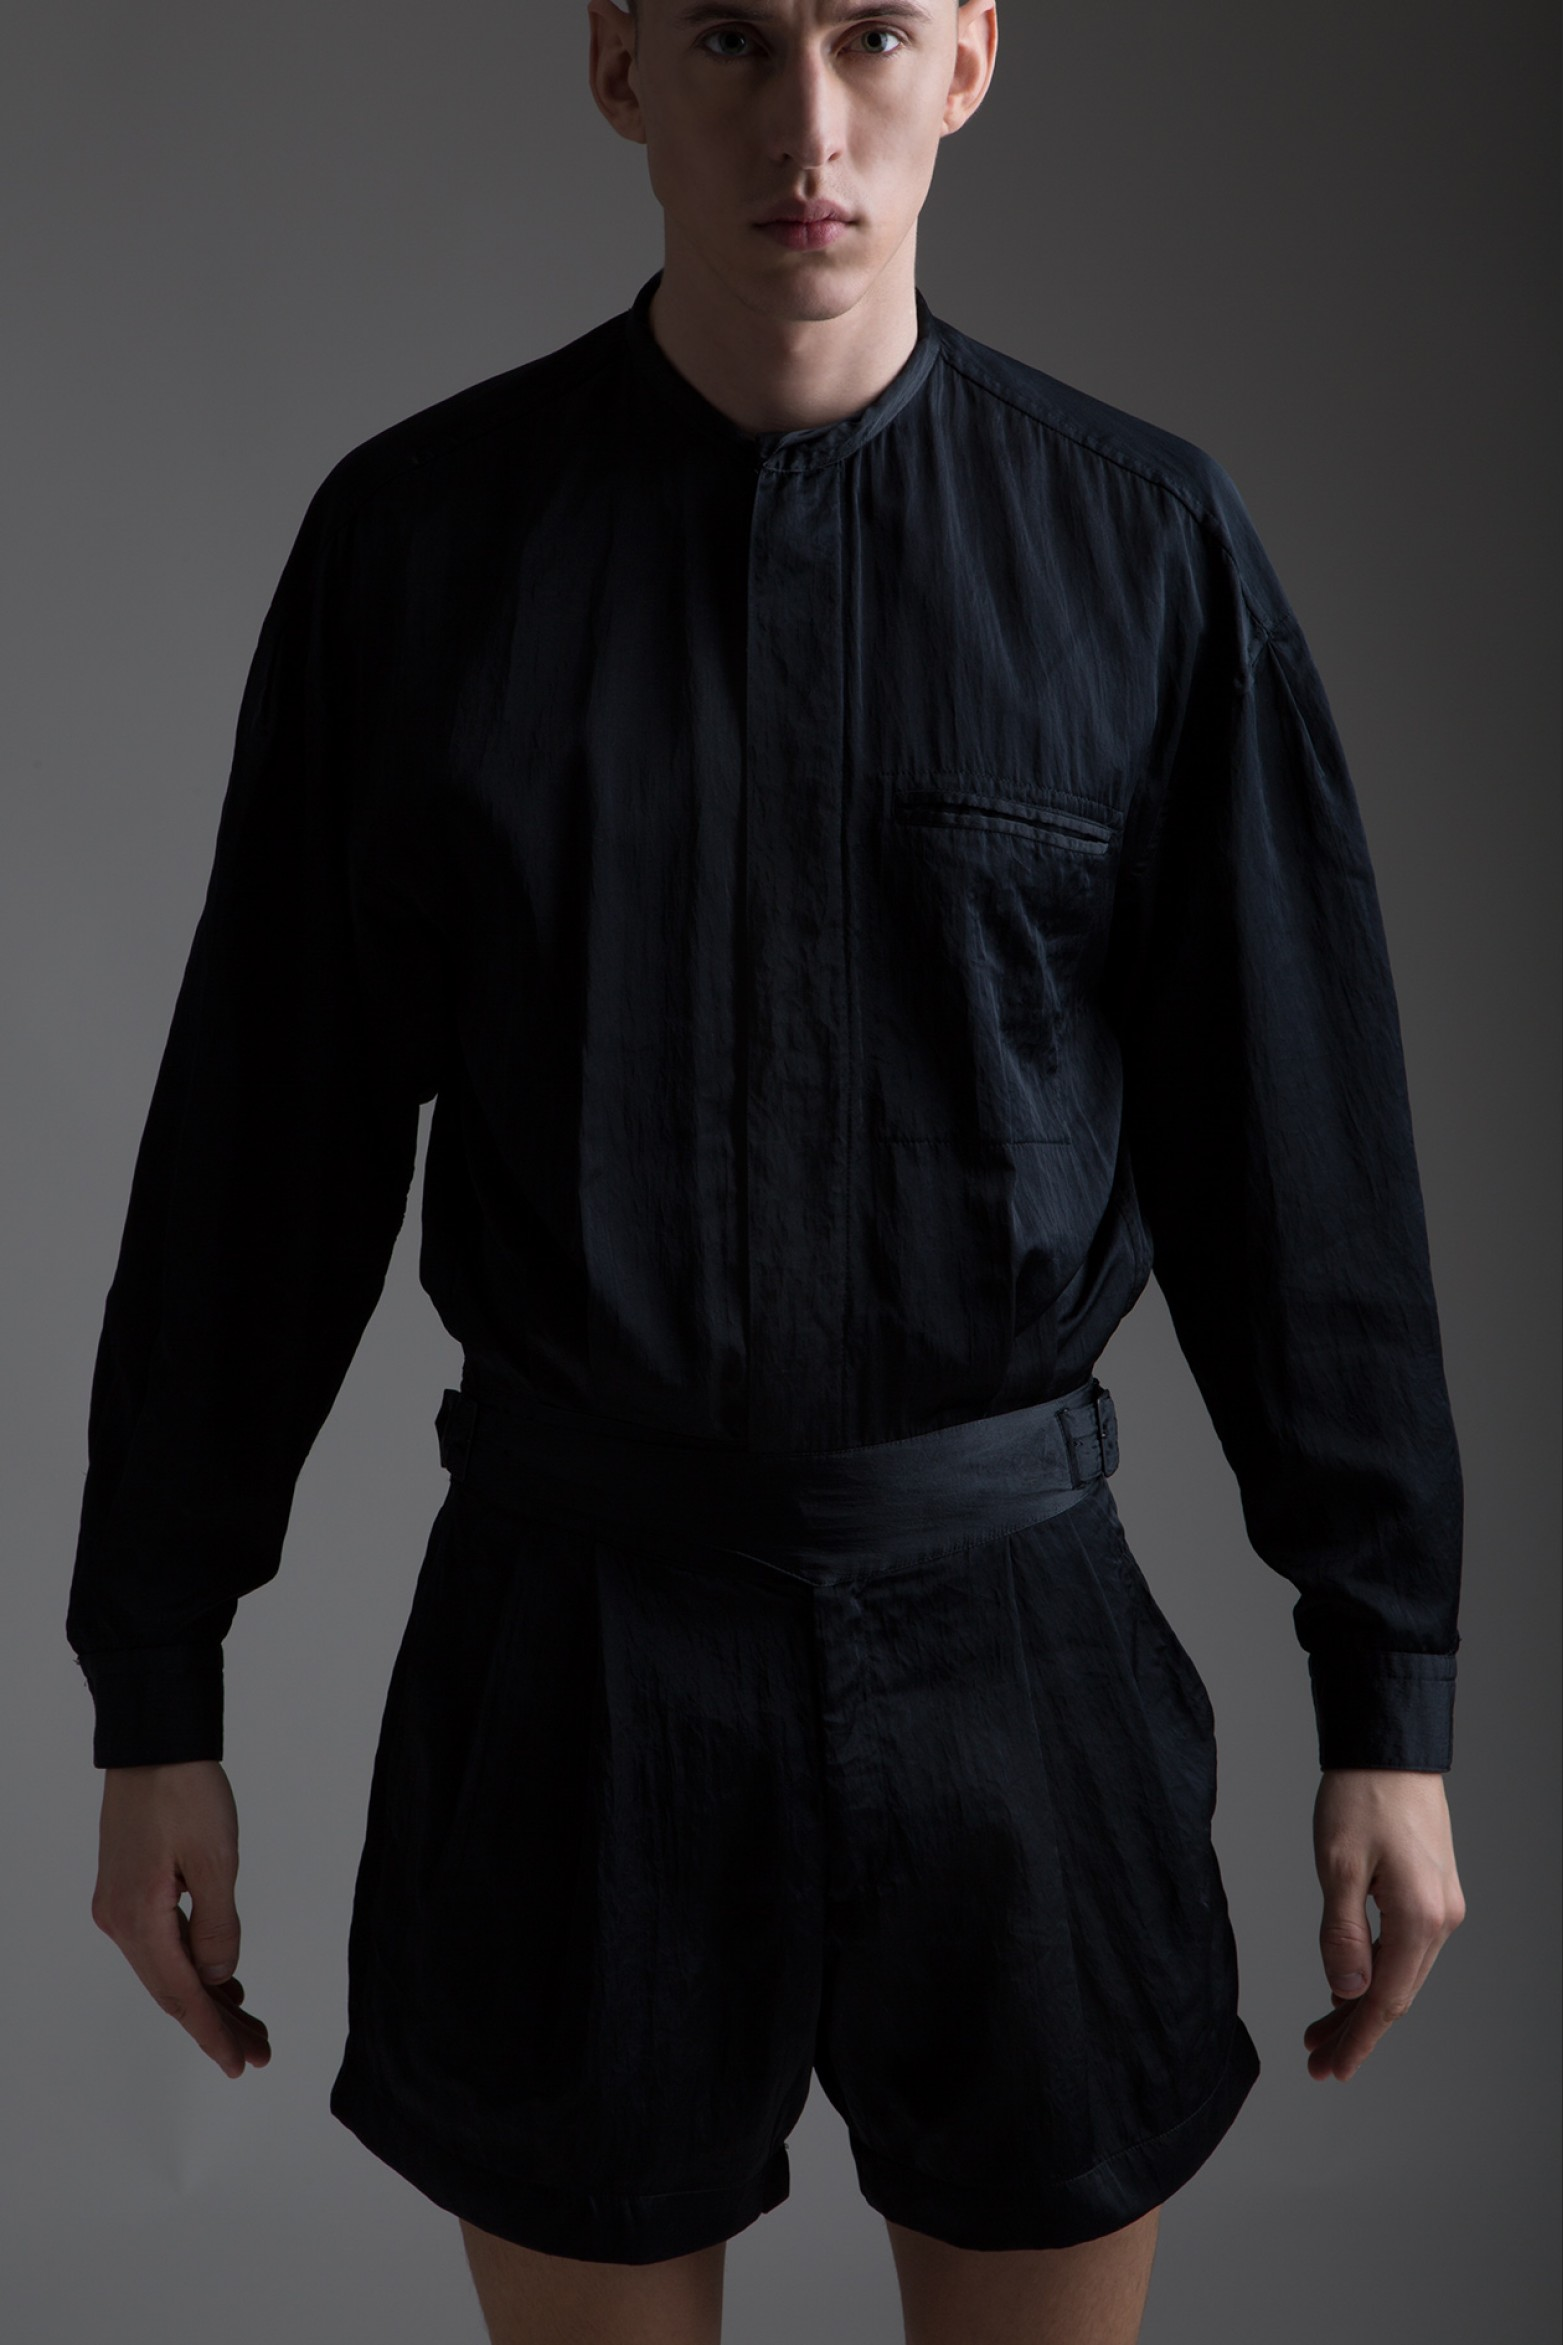 sex tourism in bali